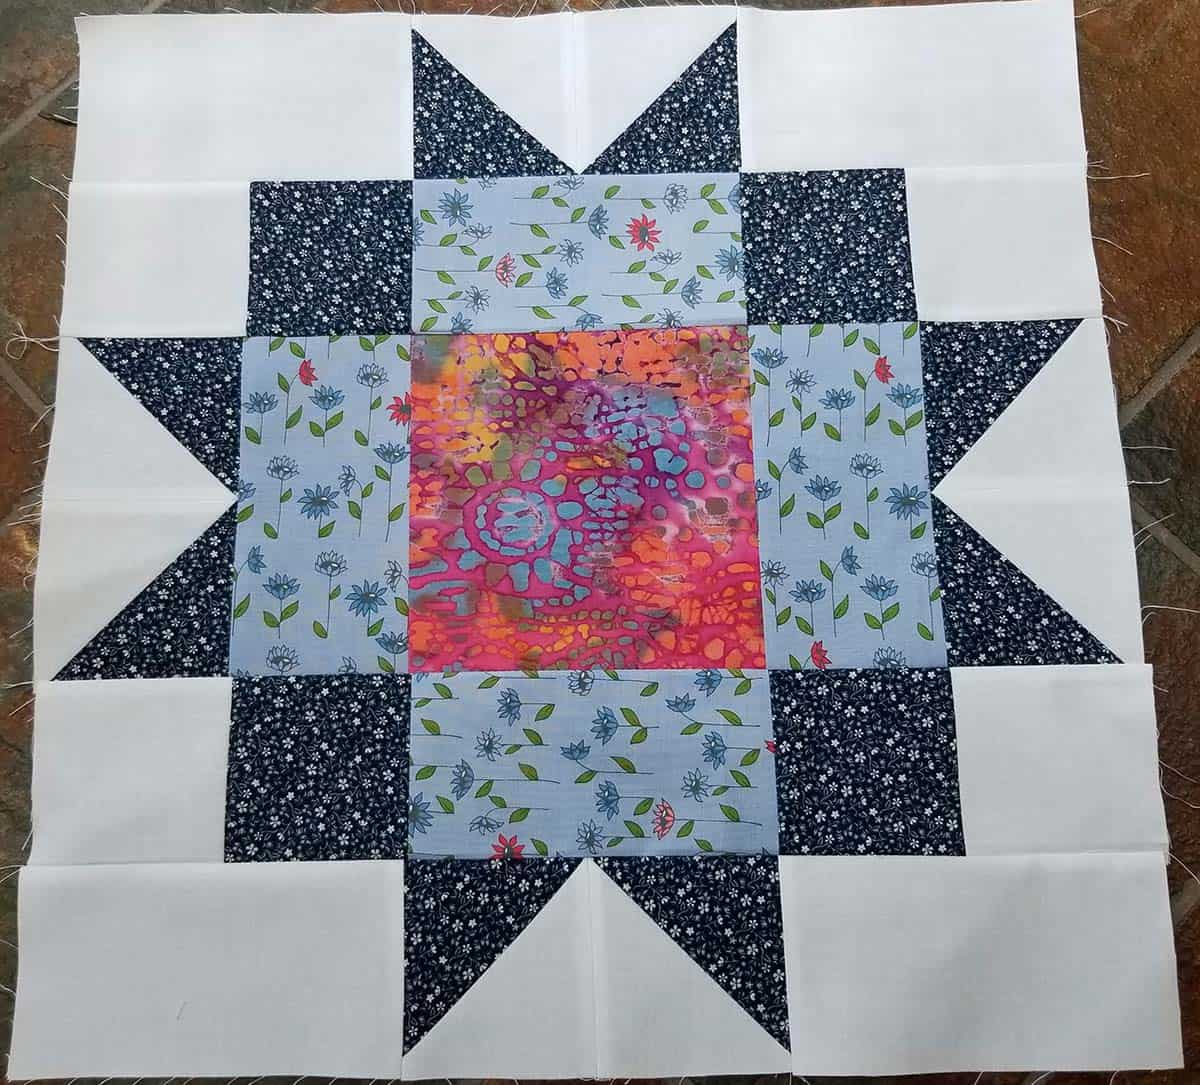 Maple Star quilt block made by Lucie